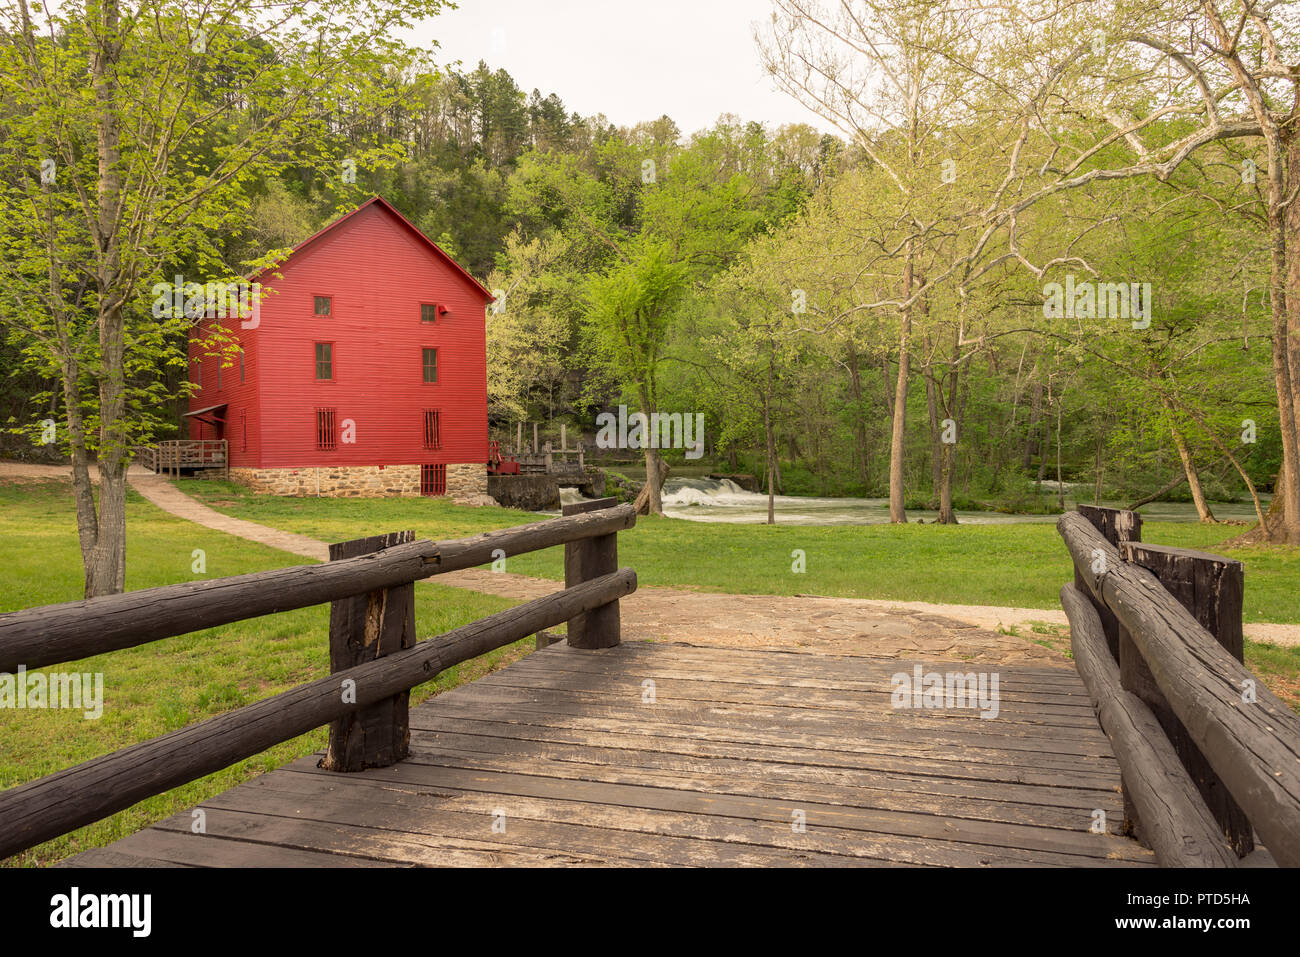 Red Mill Barn at the end of a wooden bridge, old grist mill, farm community Stock Photo